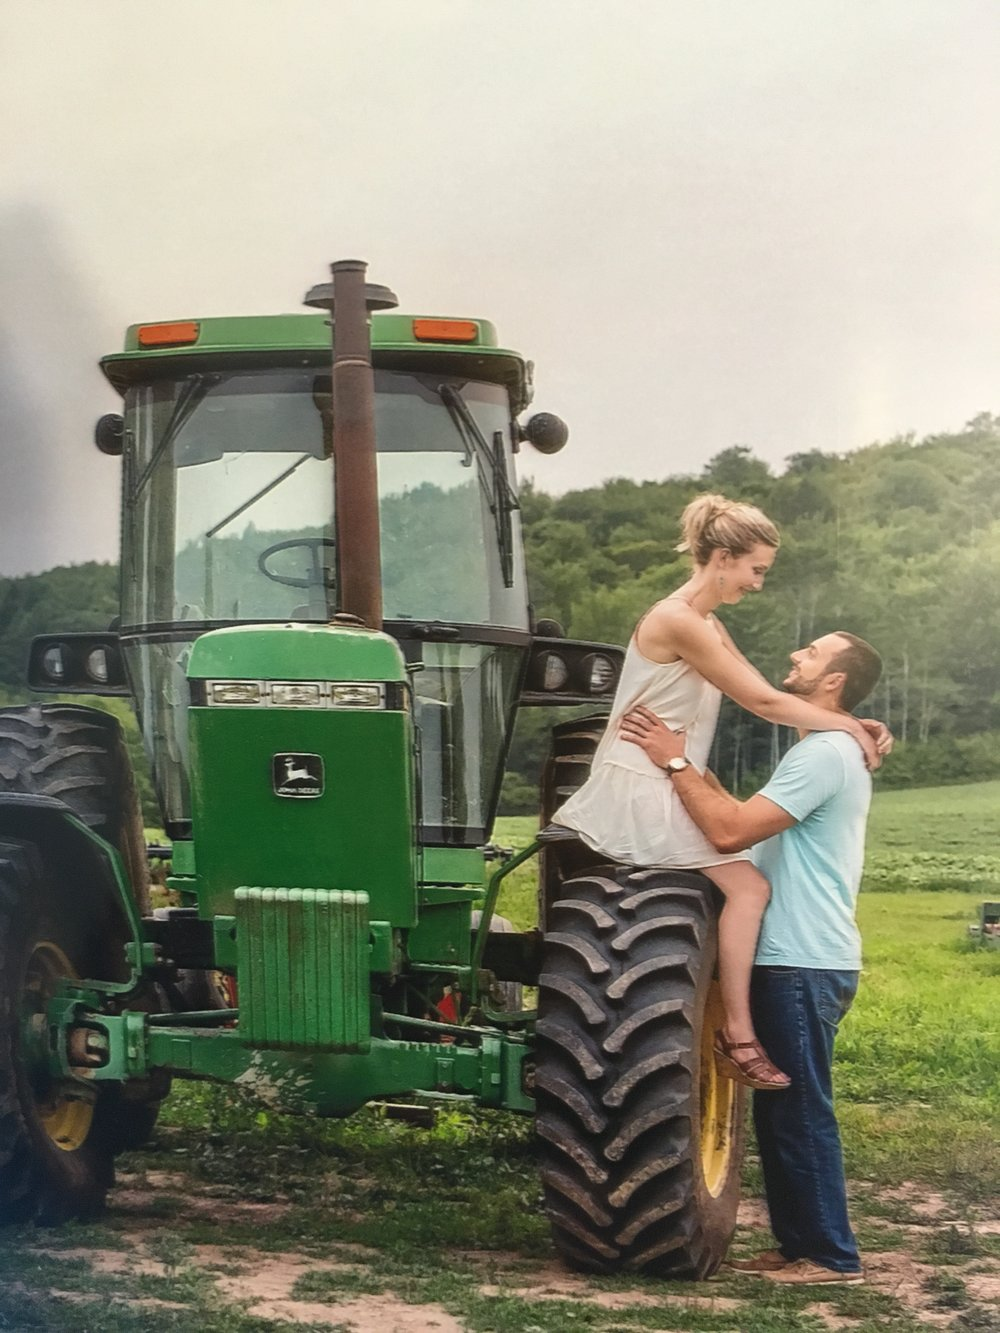 2016 ~ Engagement photos on the farm.  Our daughter and future son-in-law.